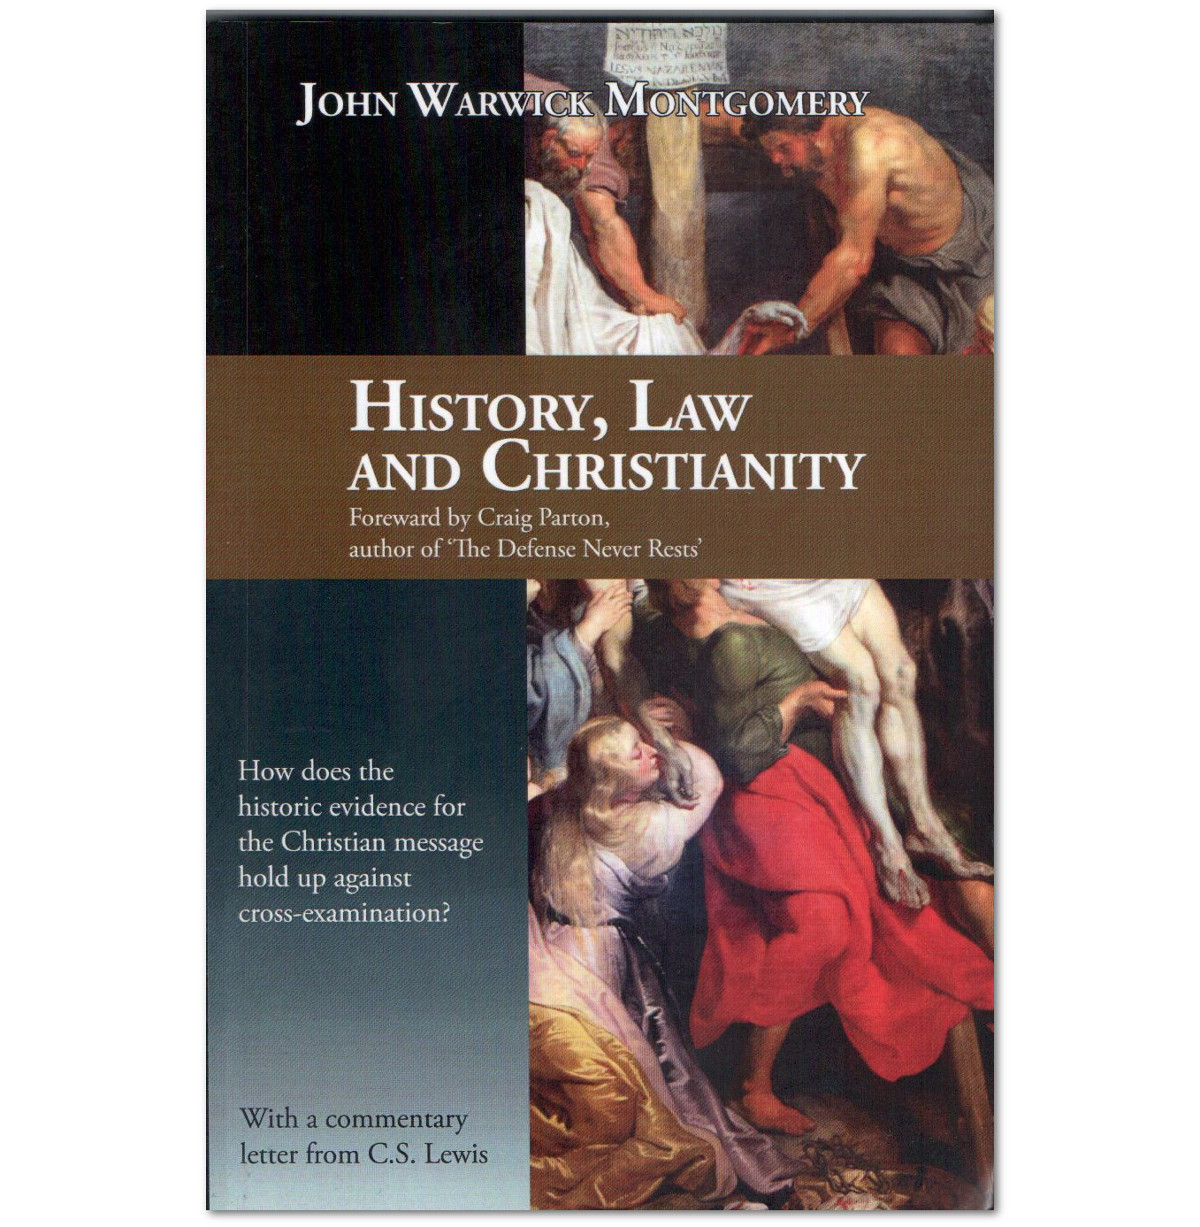 Worthwhile Reading…For Some: History, Law and Christianity